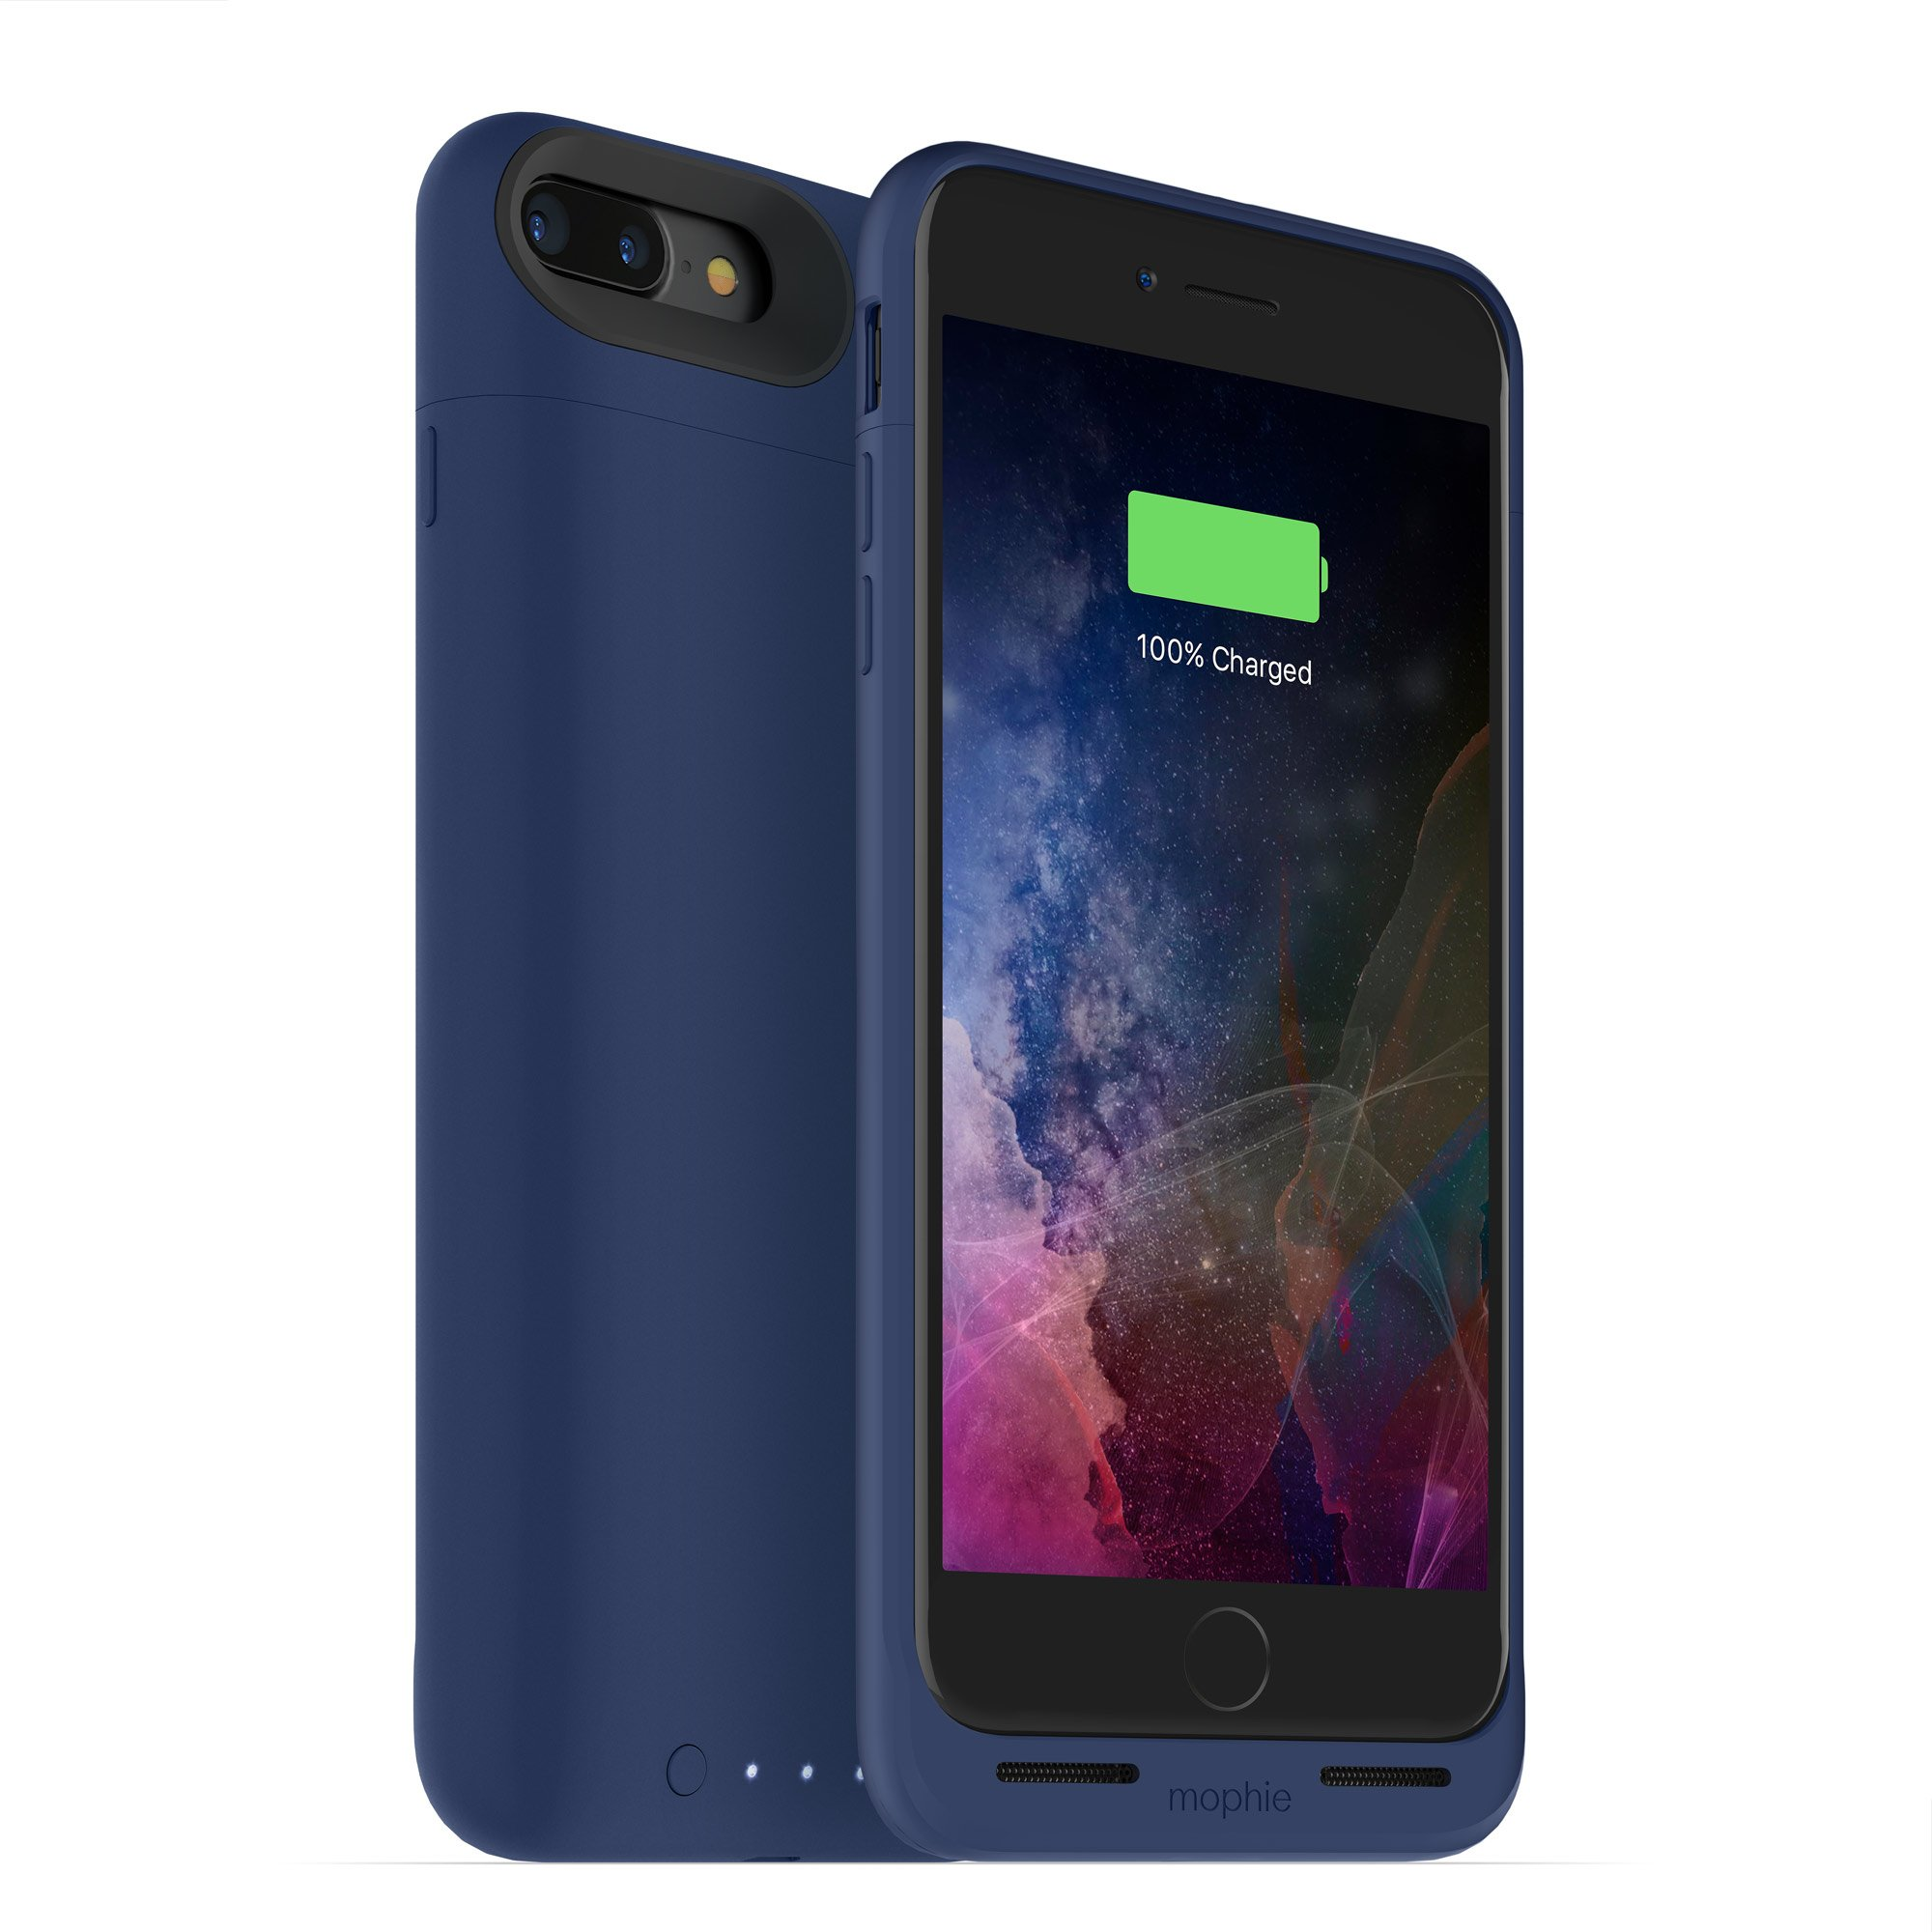 mophie juice pack wireless  - Charge Force Wireless Power - Wireless Charging Protective Battery Pack Case for Apple iPhone 8 Plus and iPhone 7 Plus - Blue by ZAGG